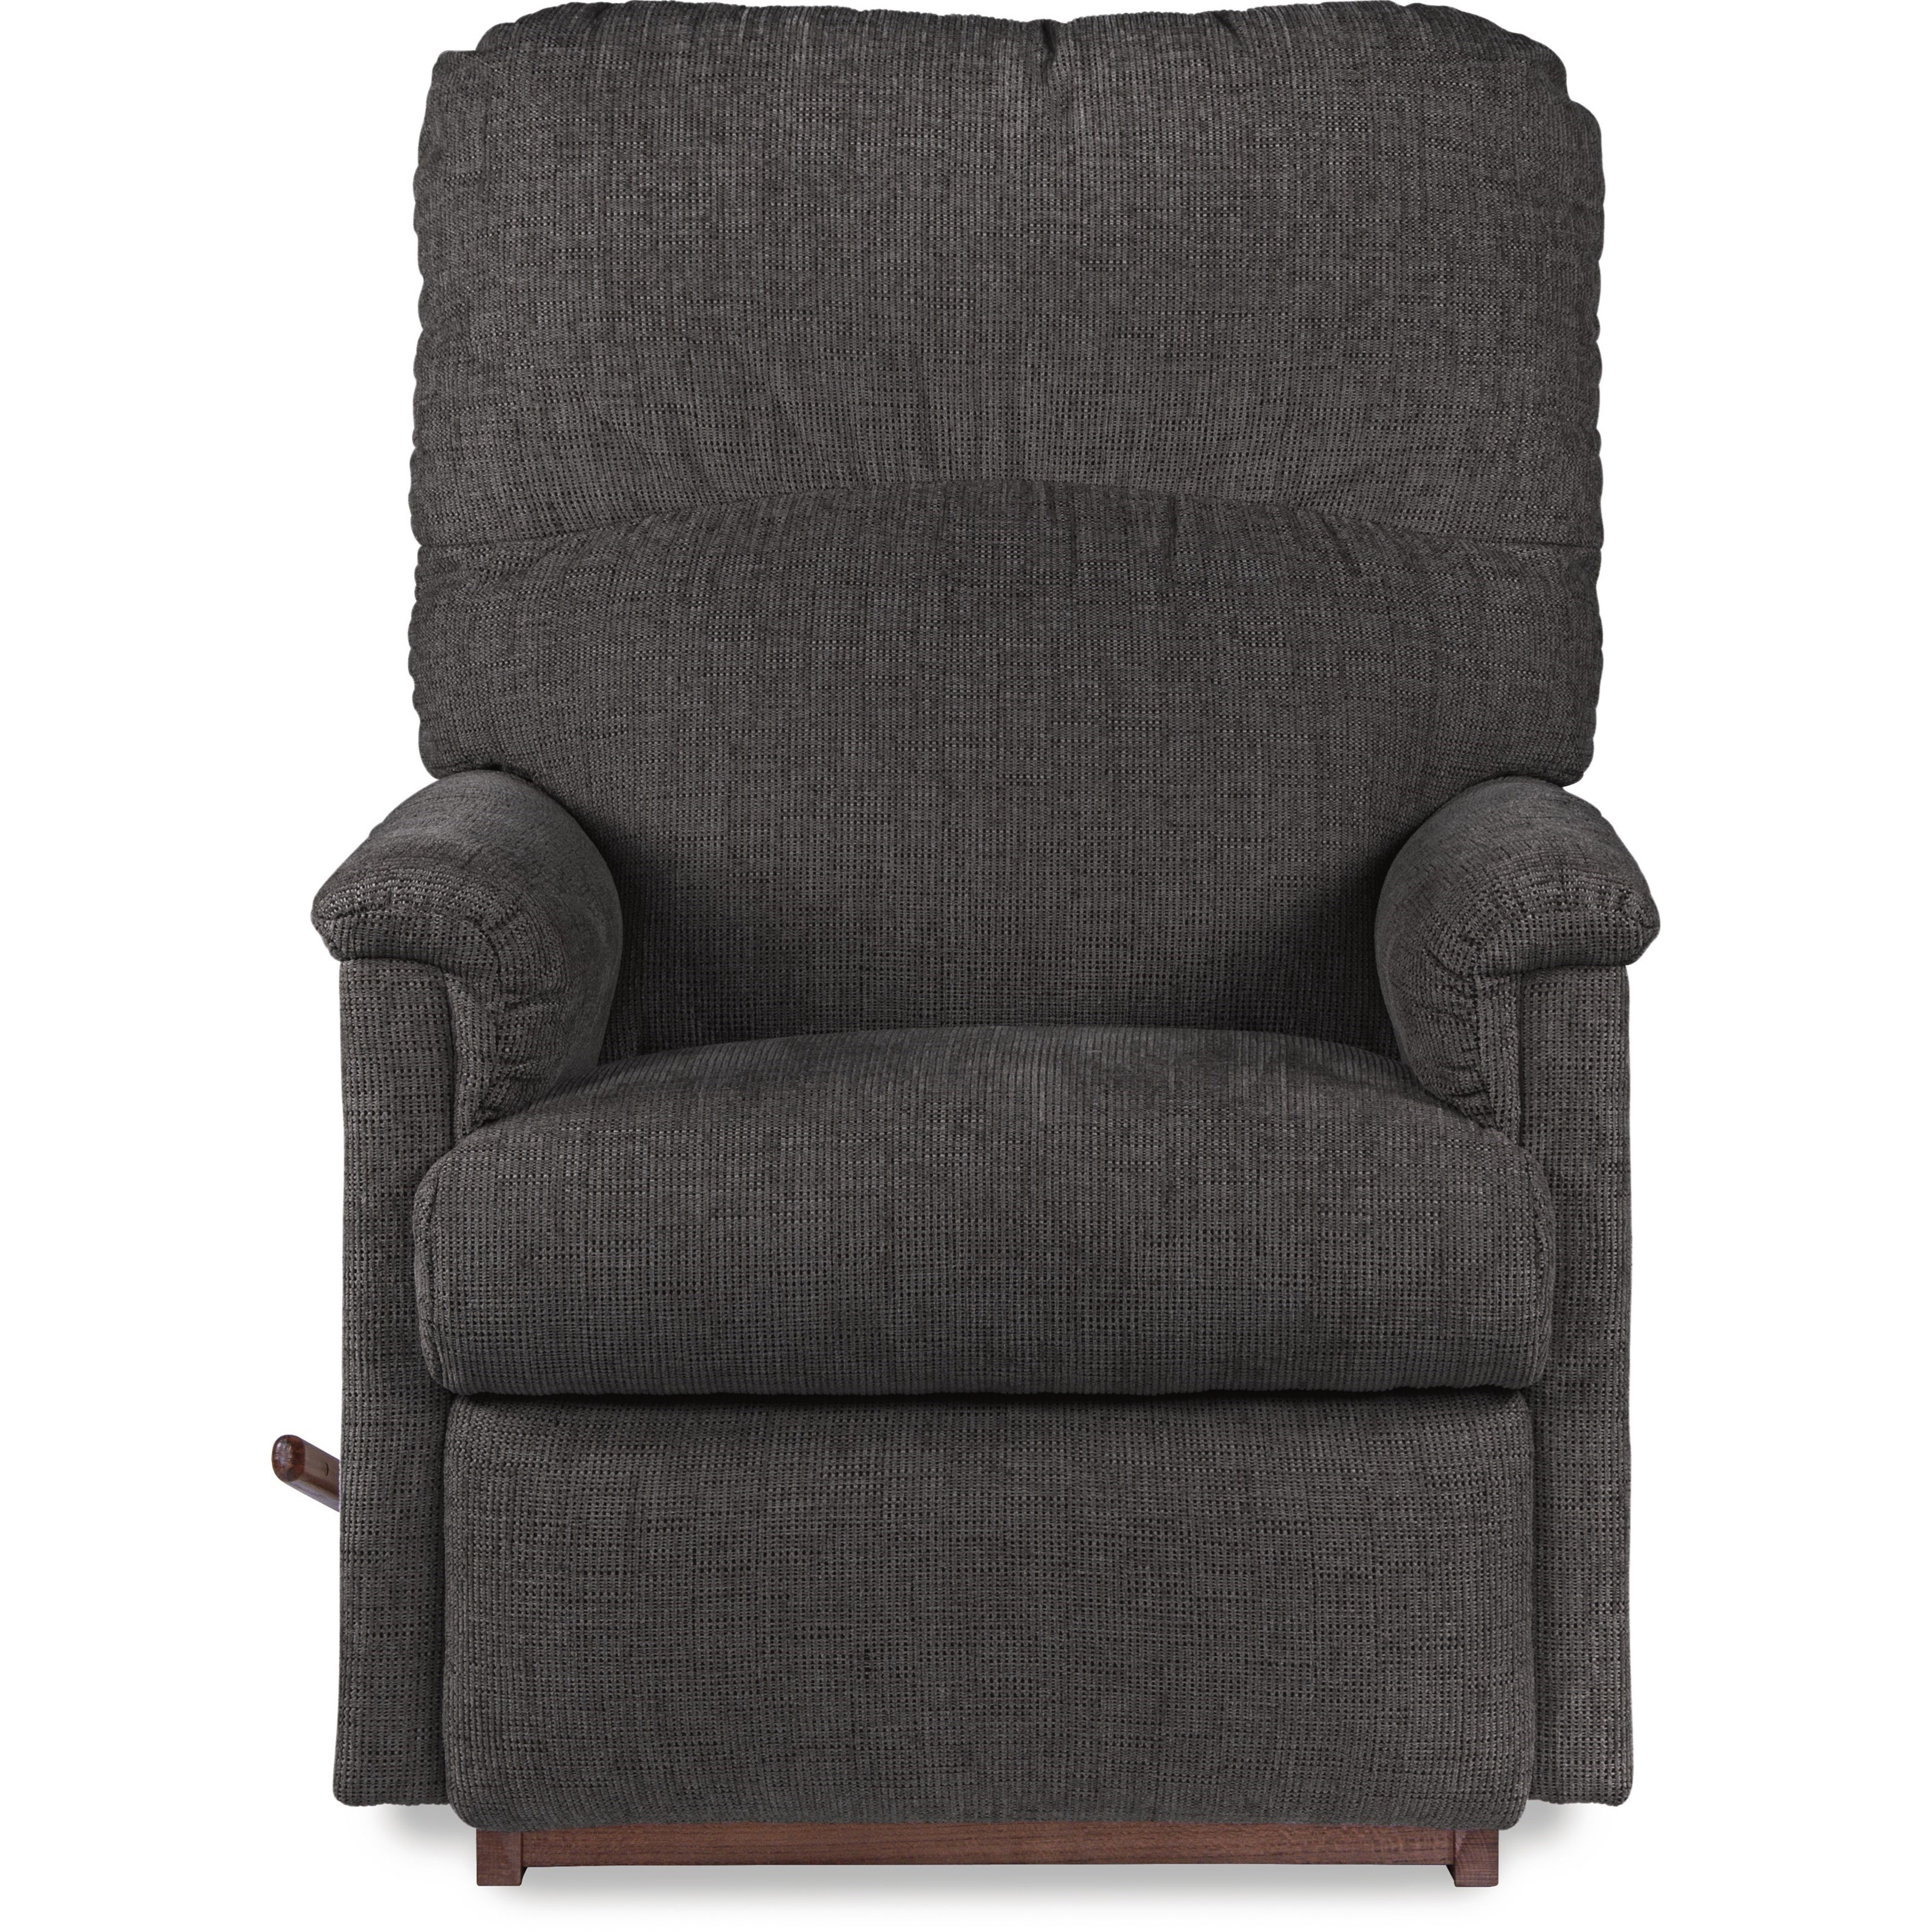 Recliners Collage Wall Recliner by La-Z-Boy at Jordan's Home Furnishings